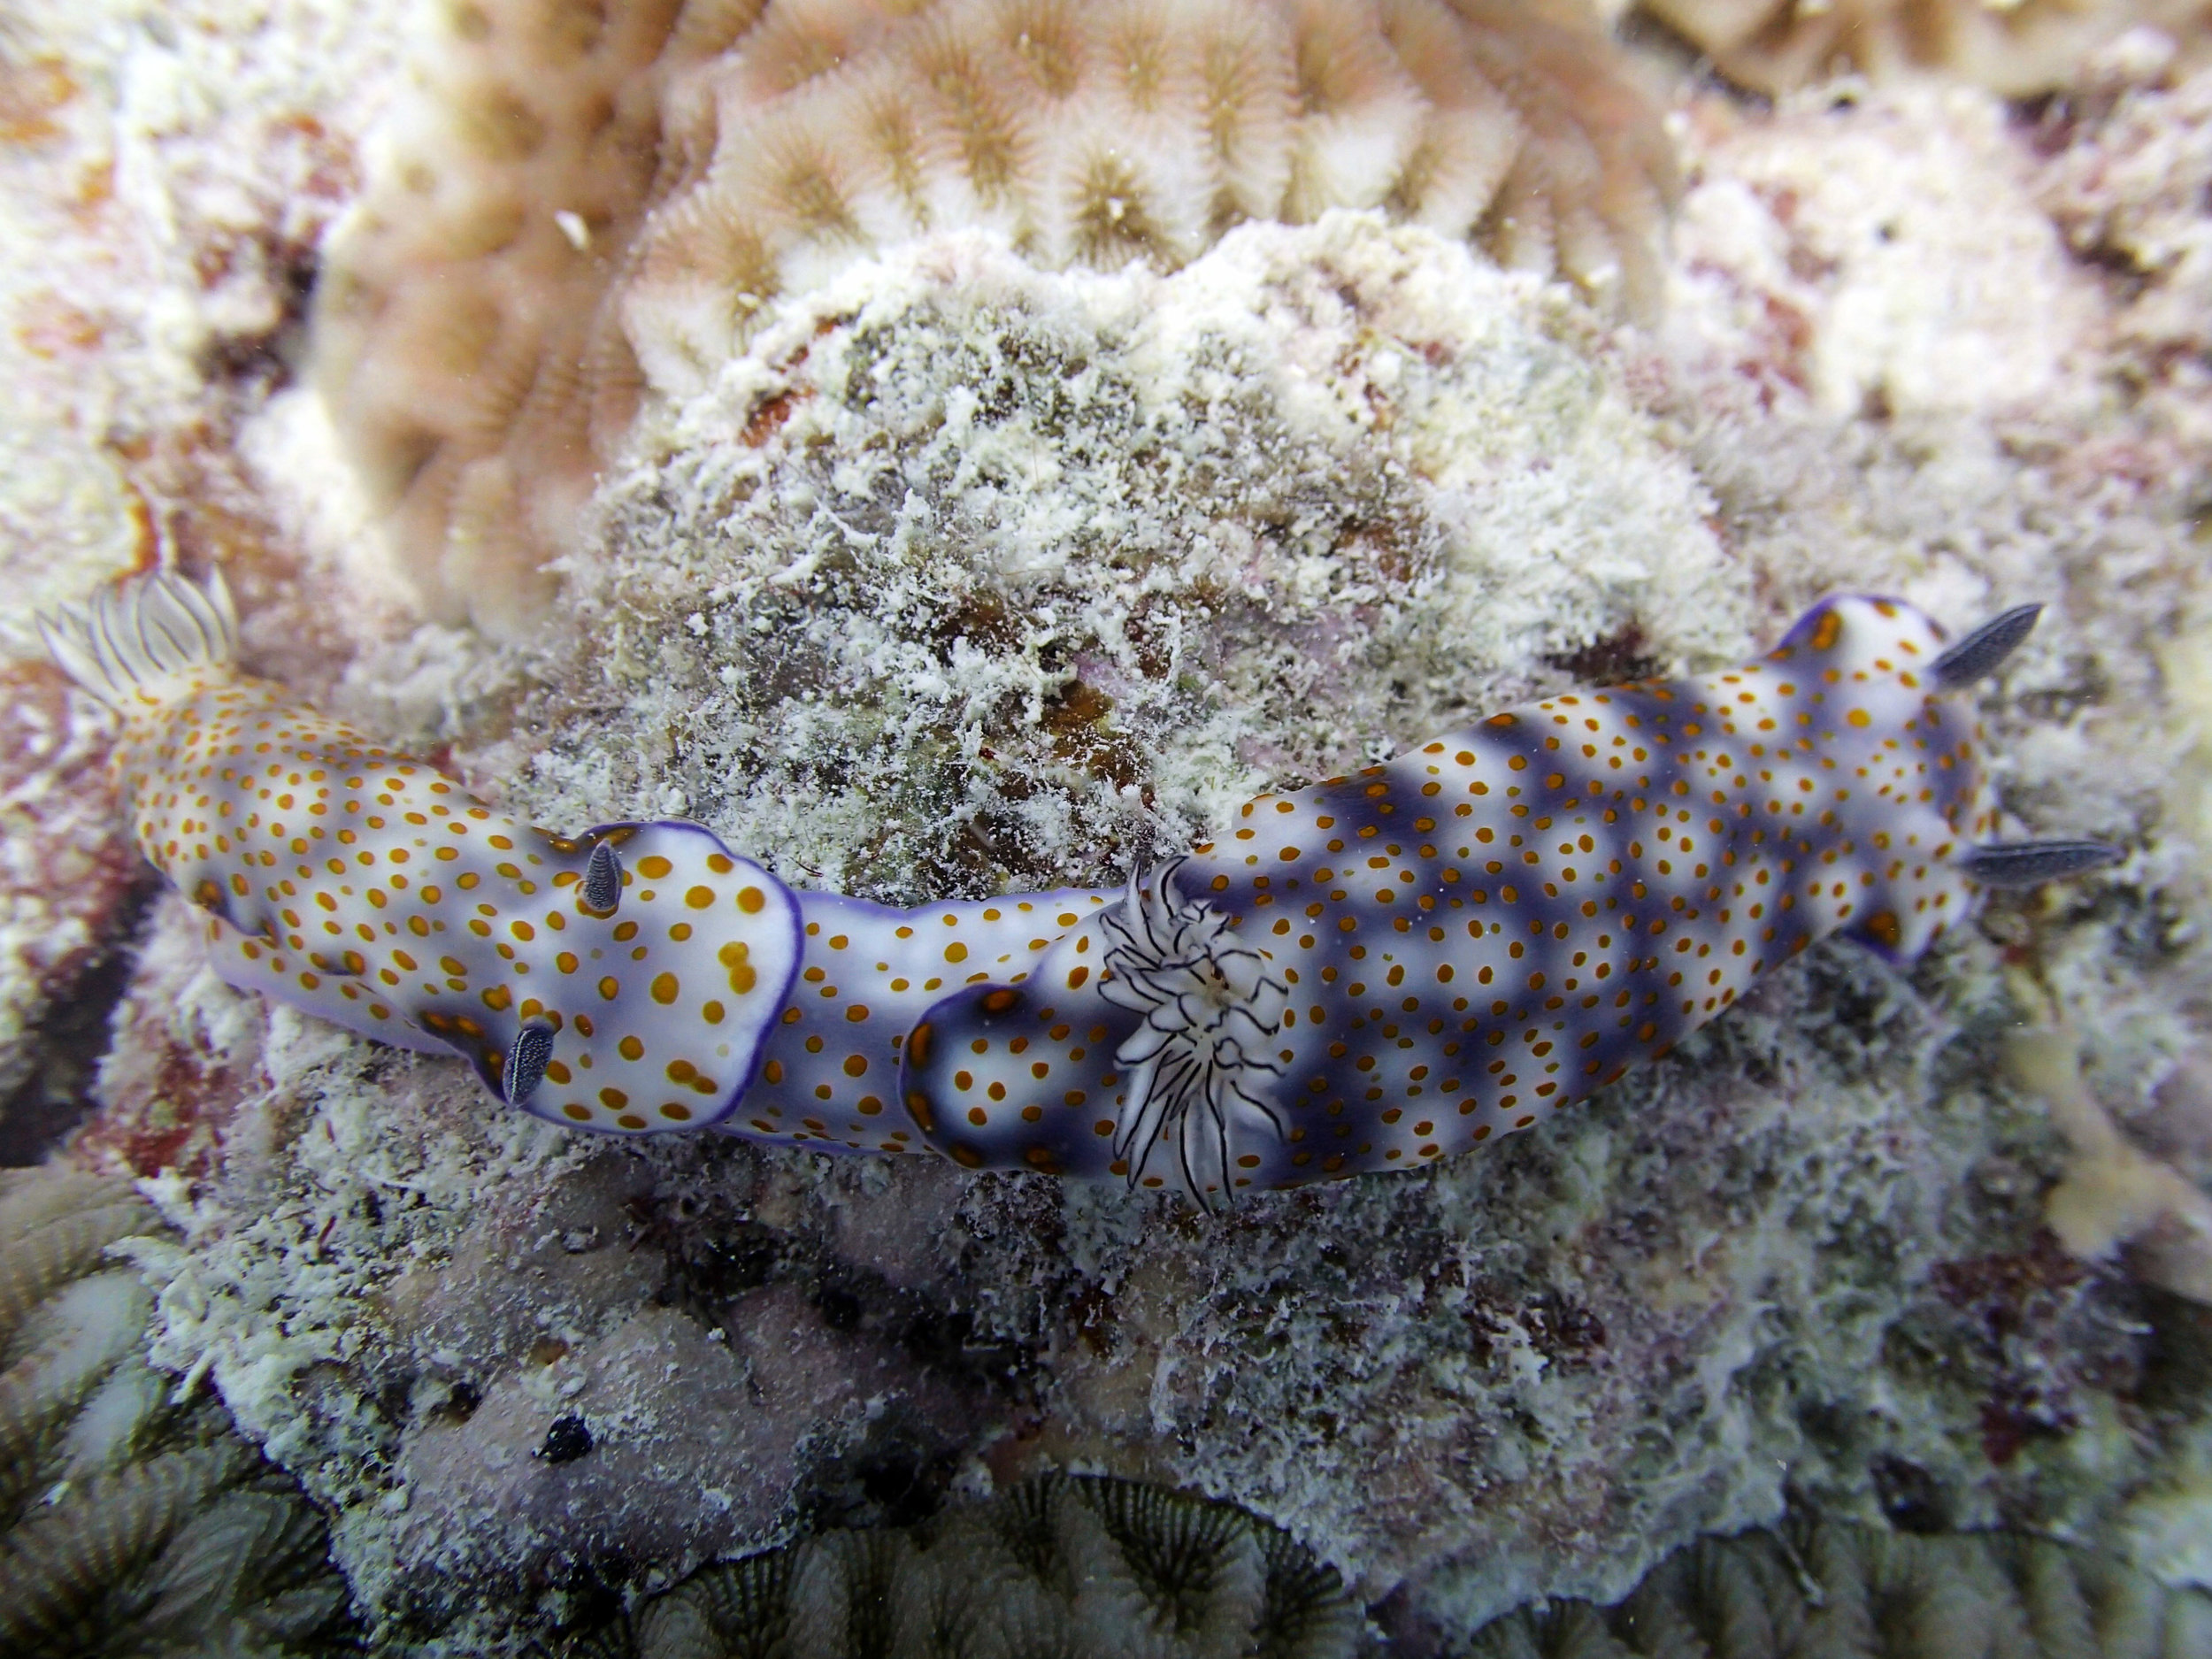 mating nudibranches.jpg